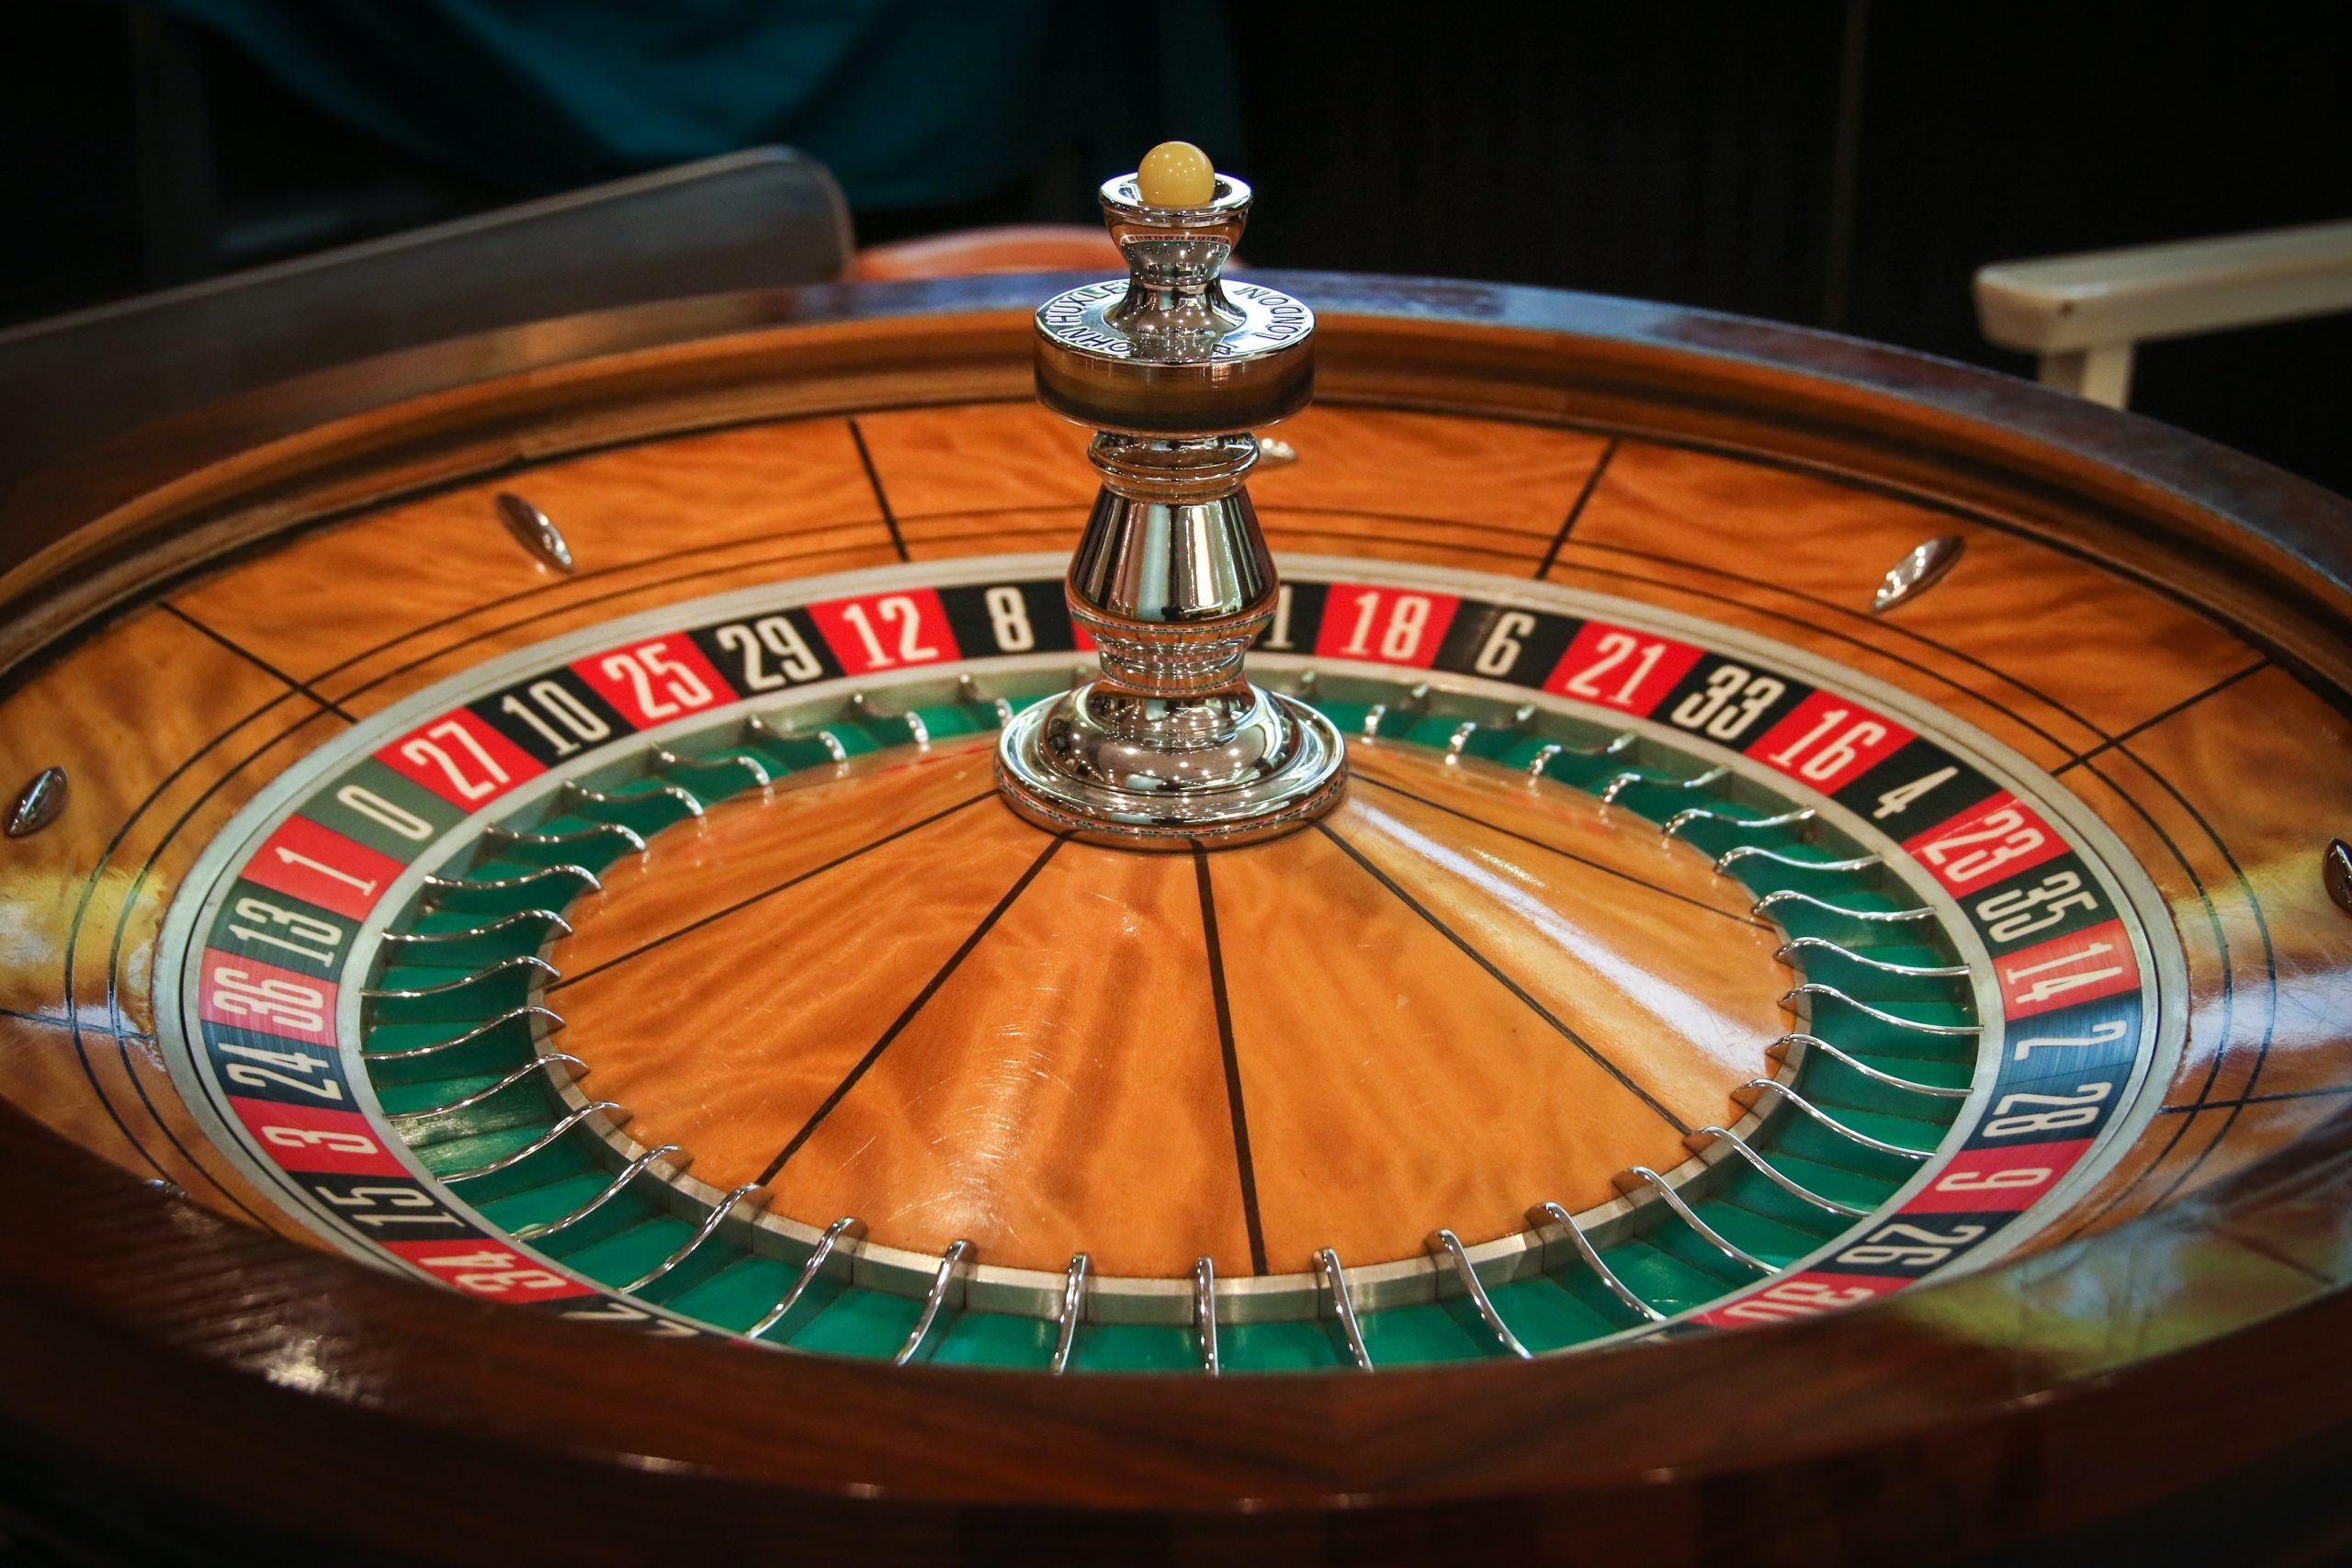 Best Casino Games for Better Payouts based on Return To Player Percentage - Gildshire